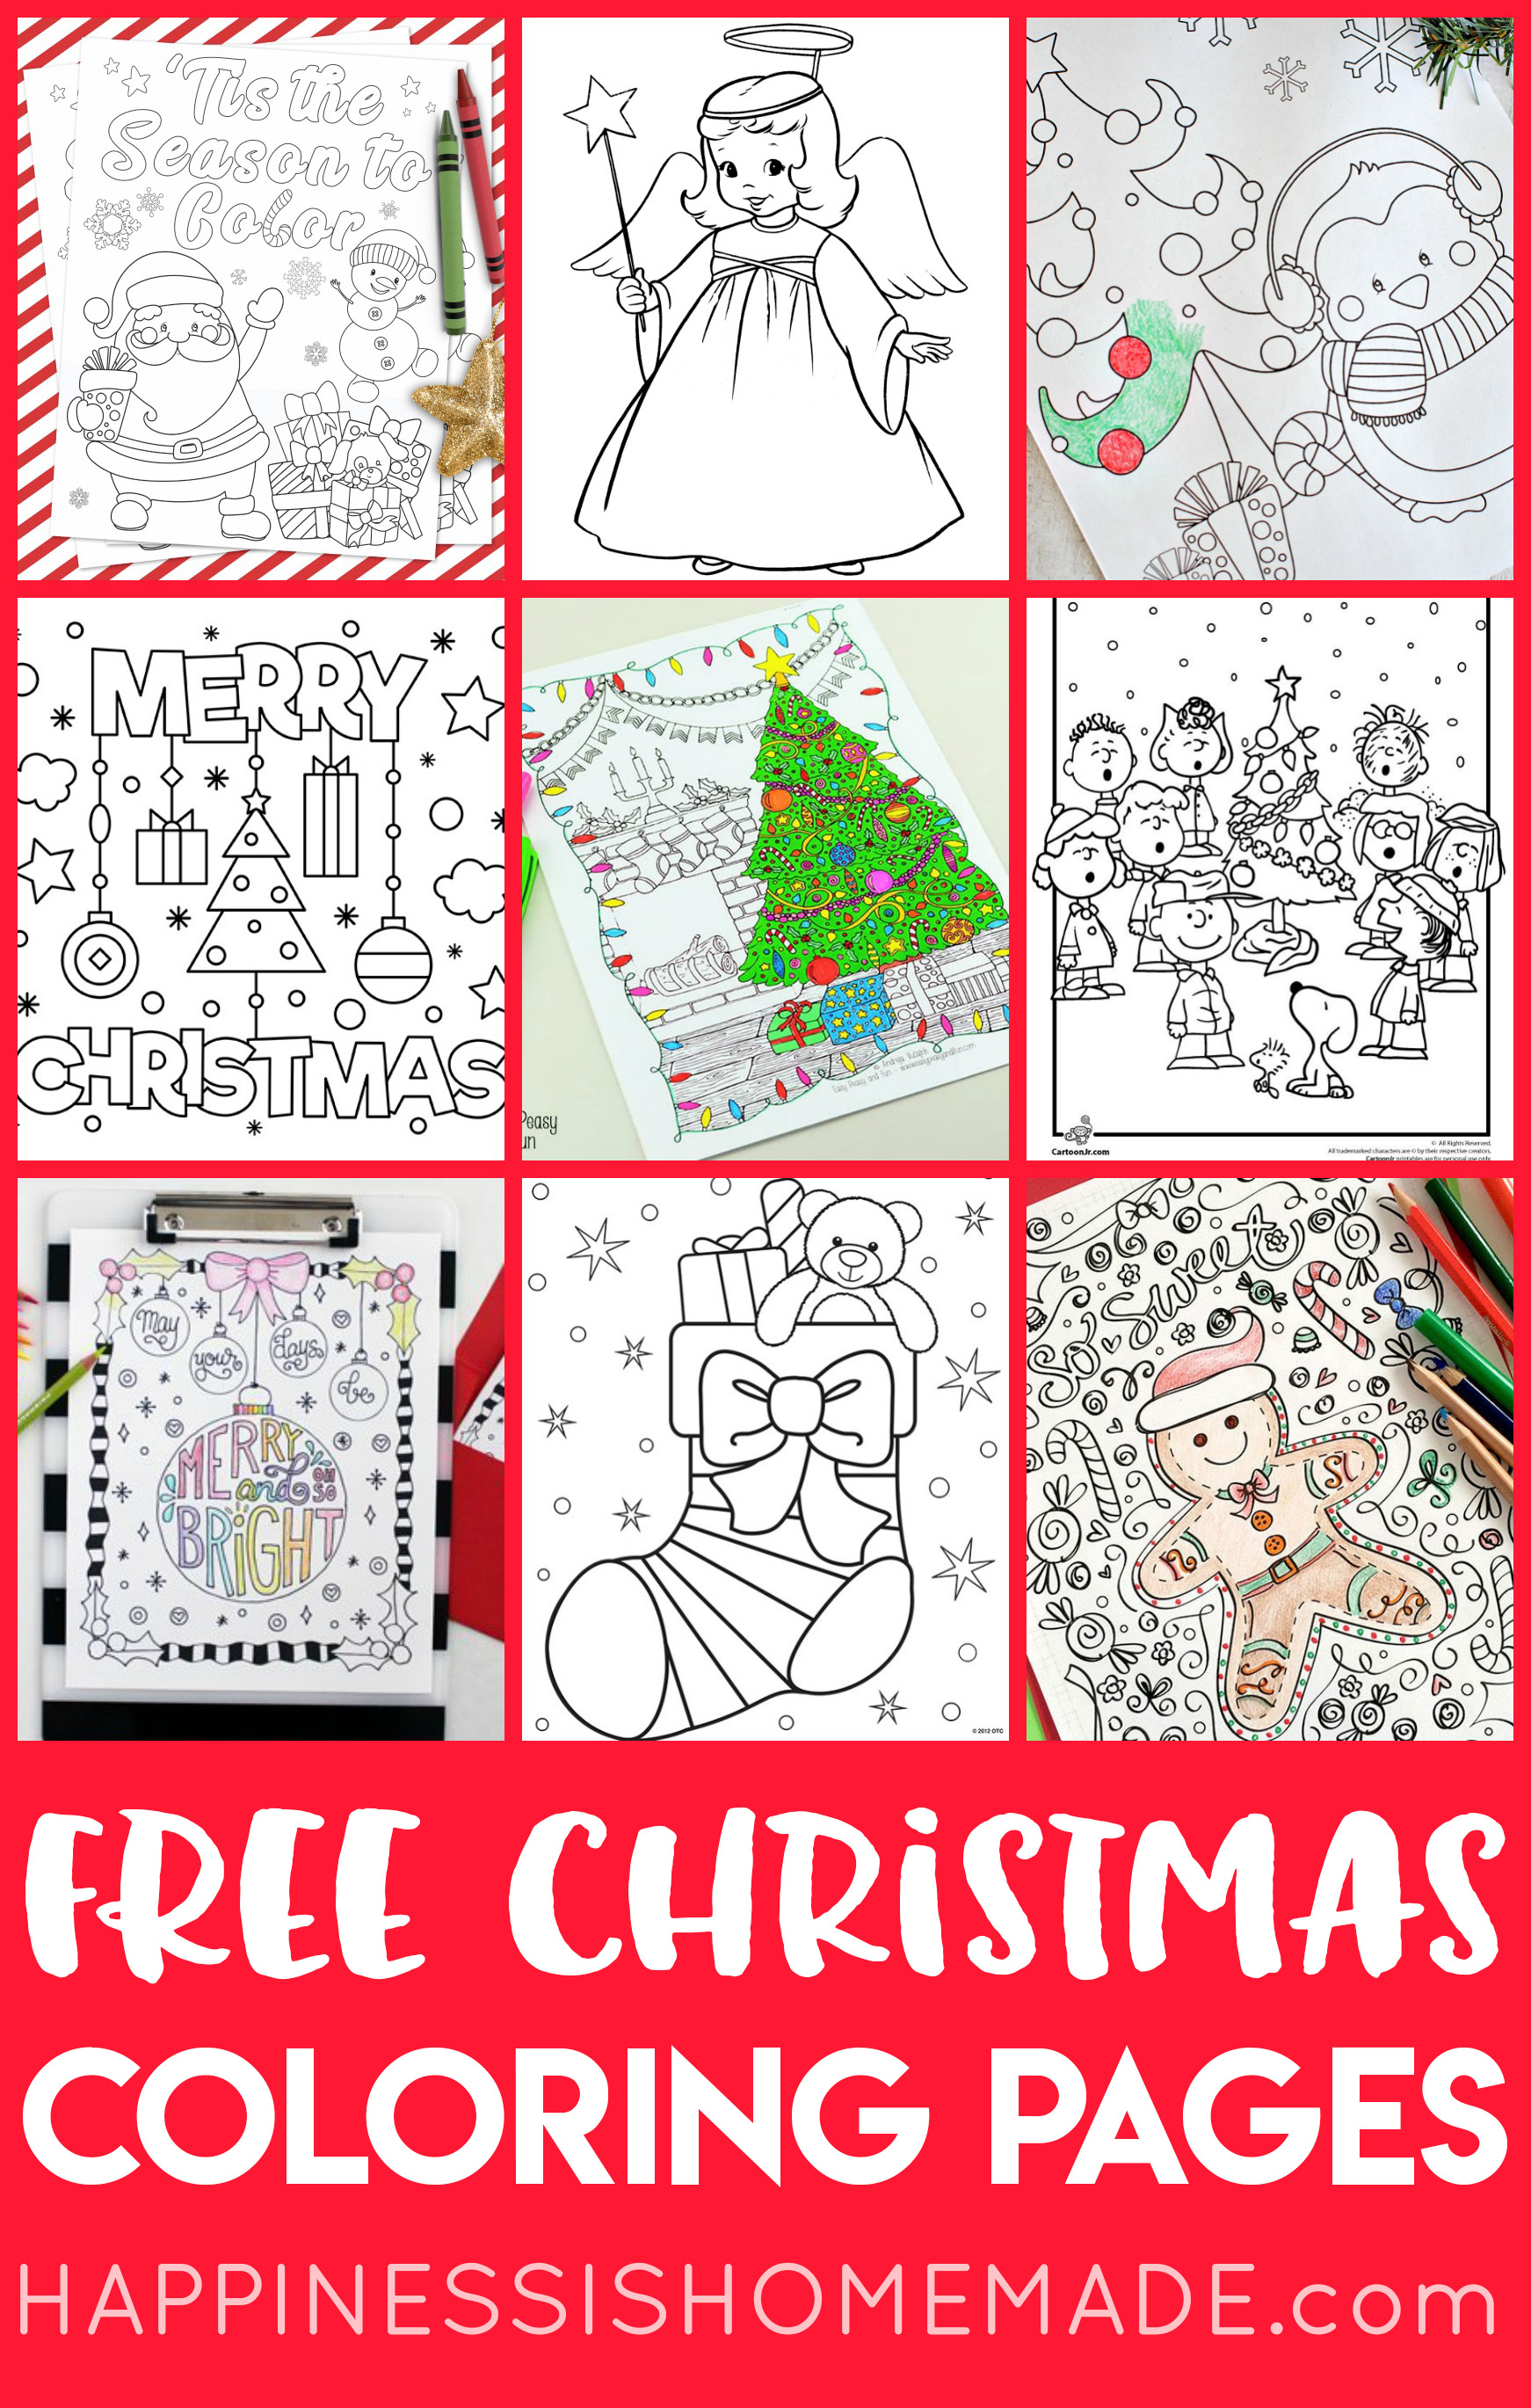 photograph regarding Free Printable Holiday Coloring Pages named Cost-free Xmas Coloring Web pages for Grown ups and Young children